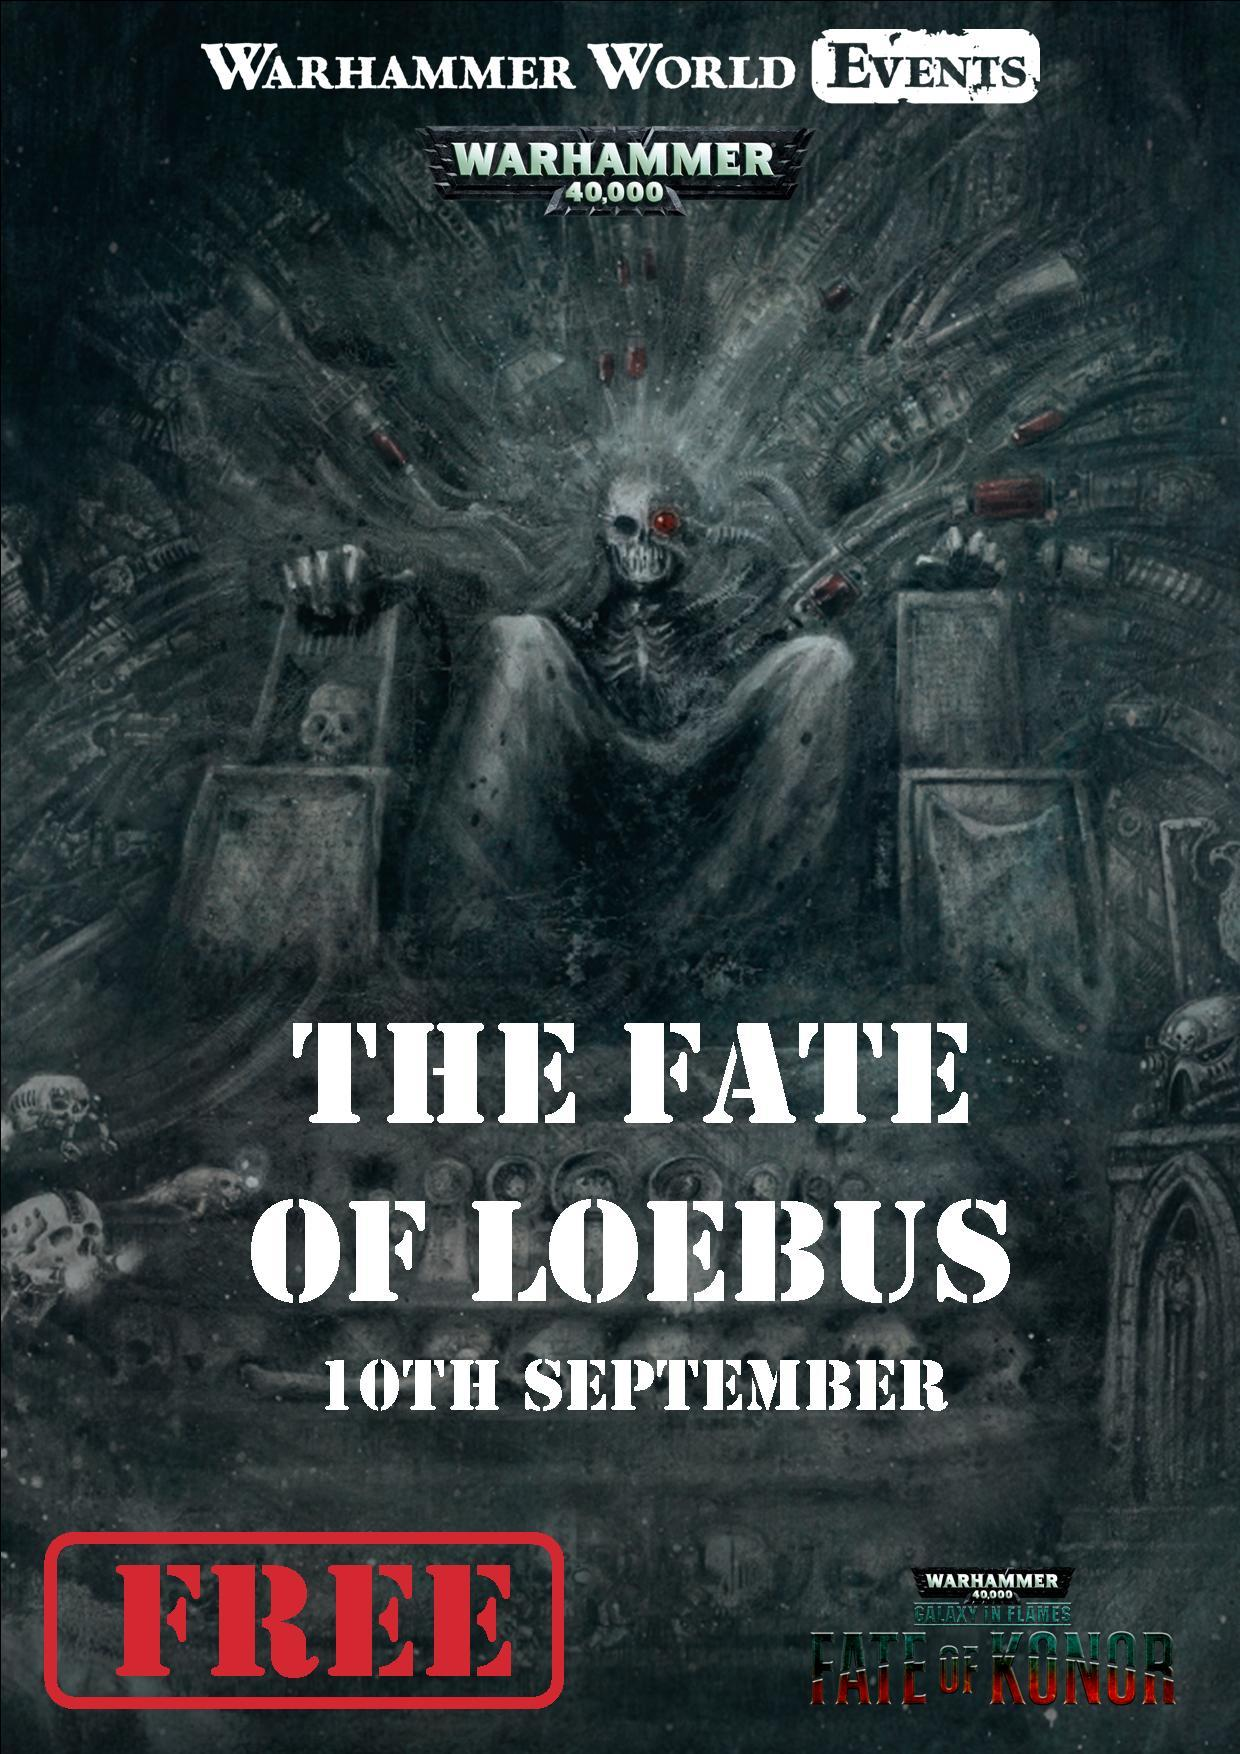 The Fate of Loebus